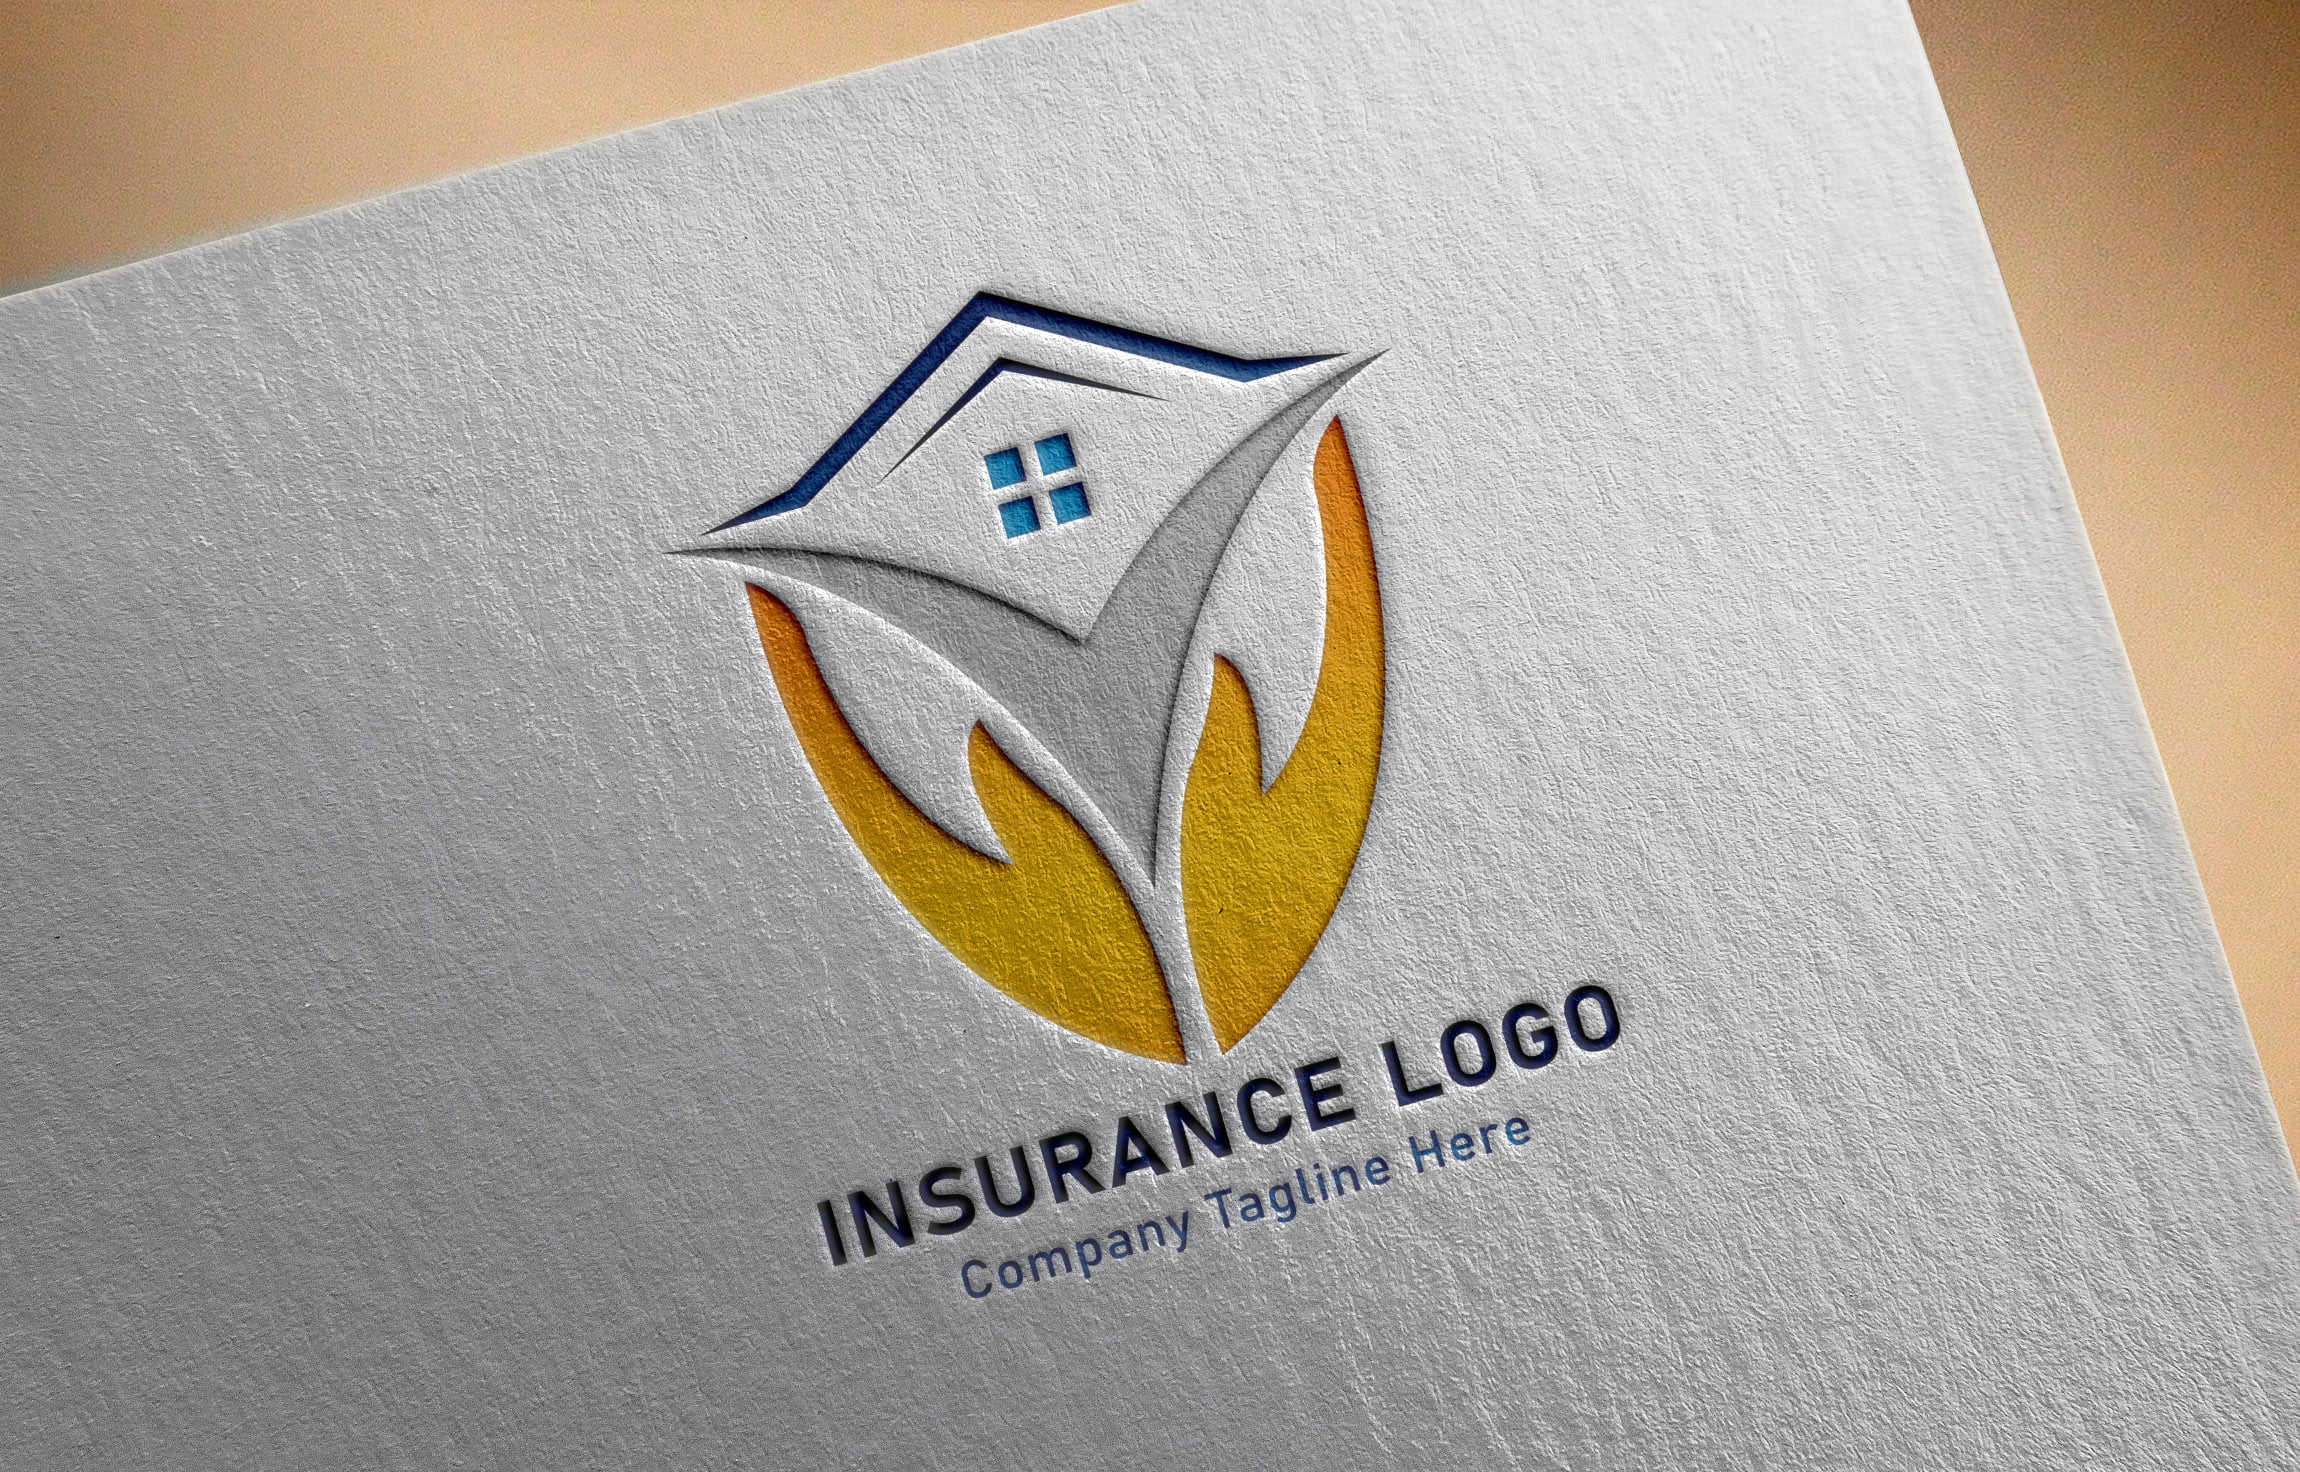 Finance & Insurance Logo with paper mockup